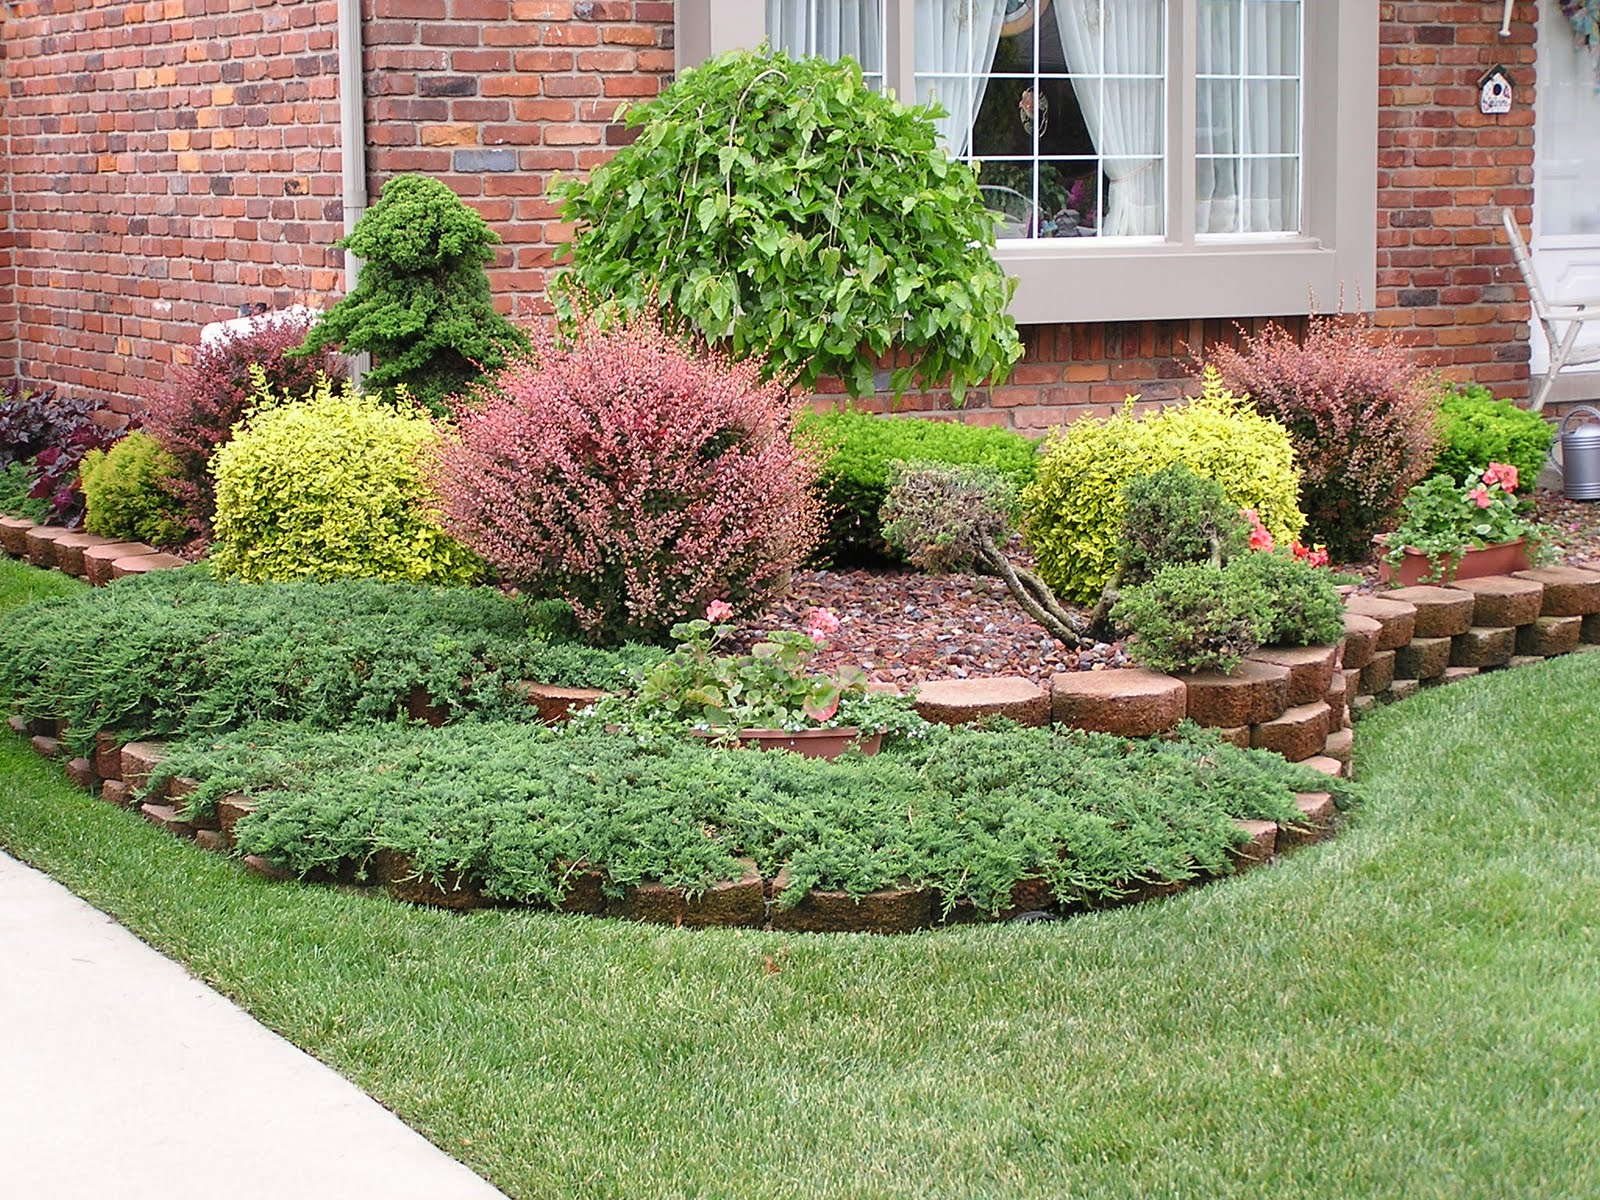 D i y d e s i g n curb appeal part 2 the landscaping for Landscaping ideas for my front yard